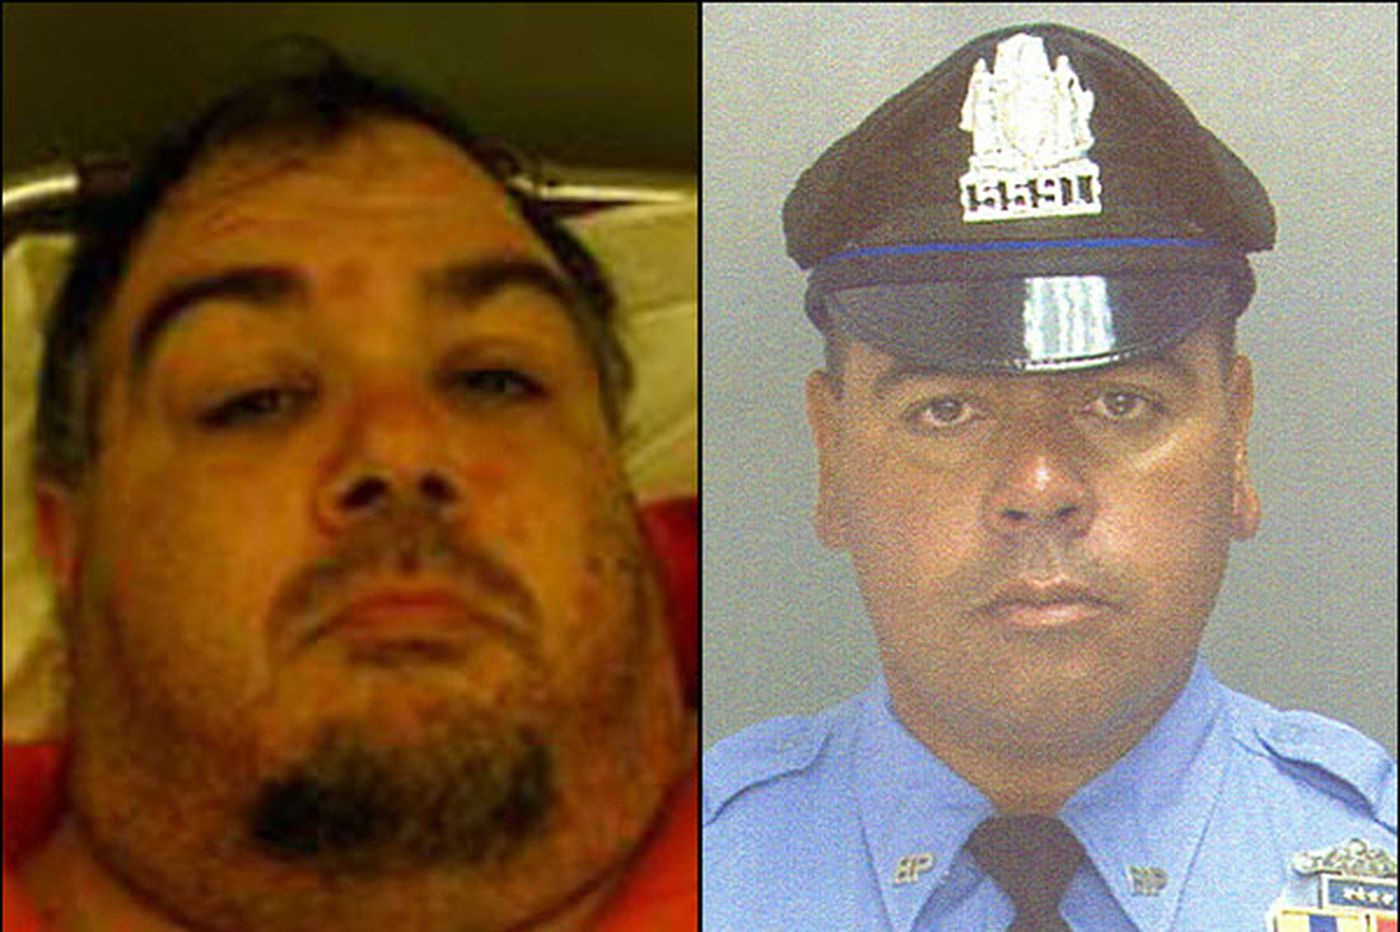 DUI driver who killed Philly cop gets 10 to 20 years